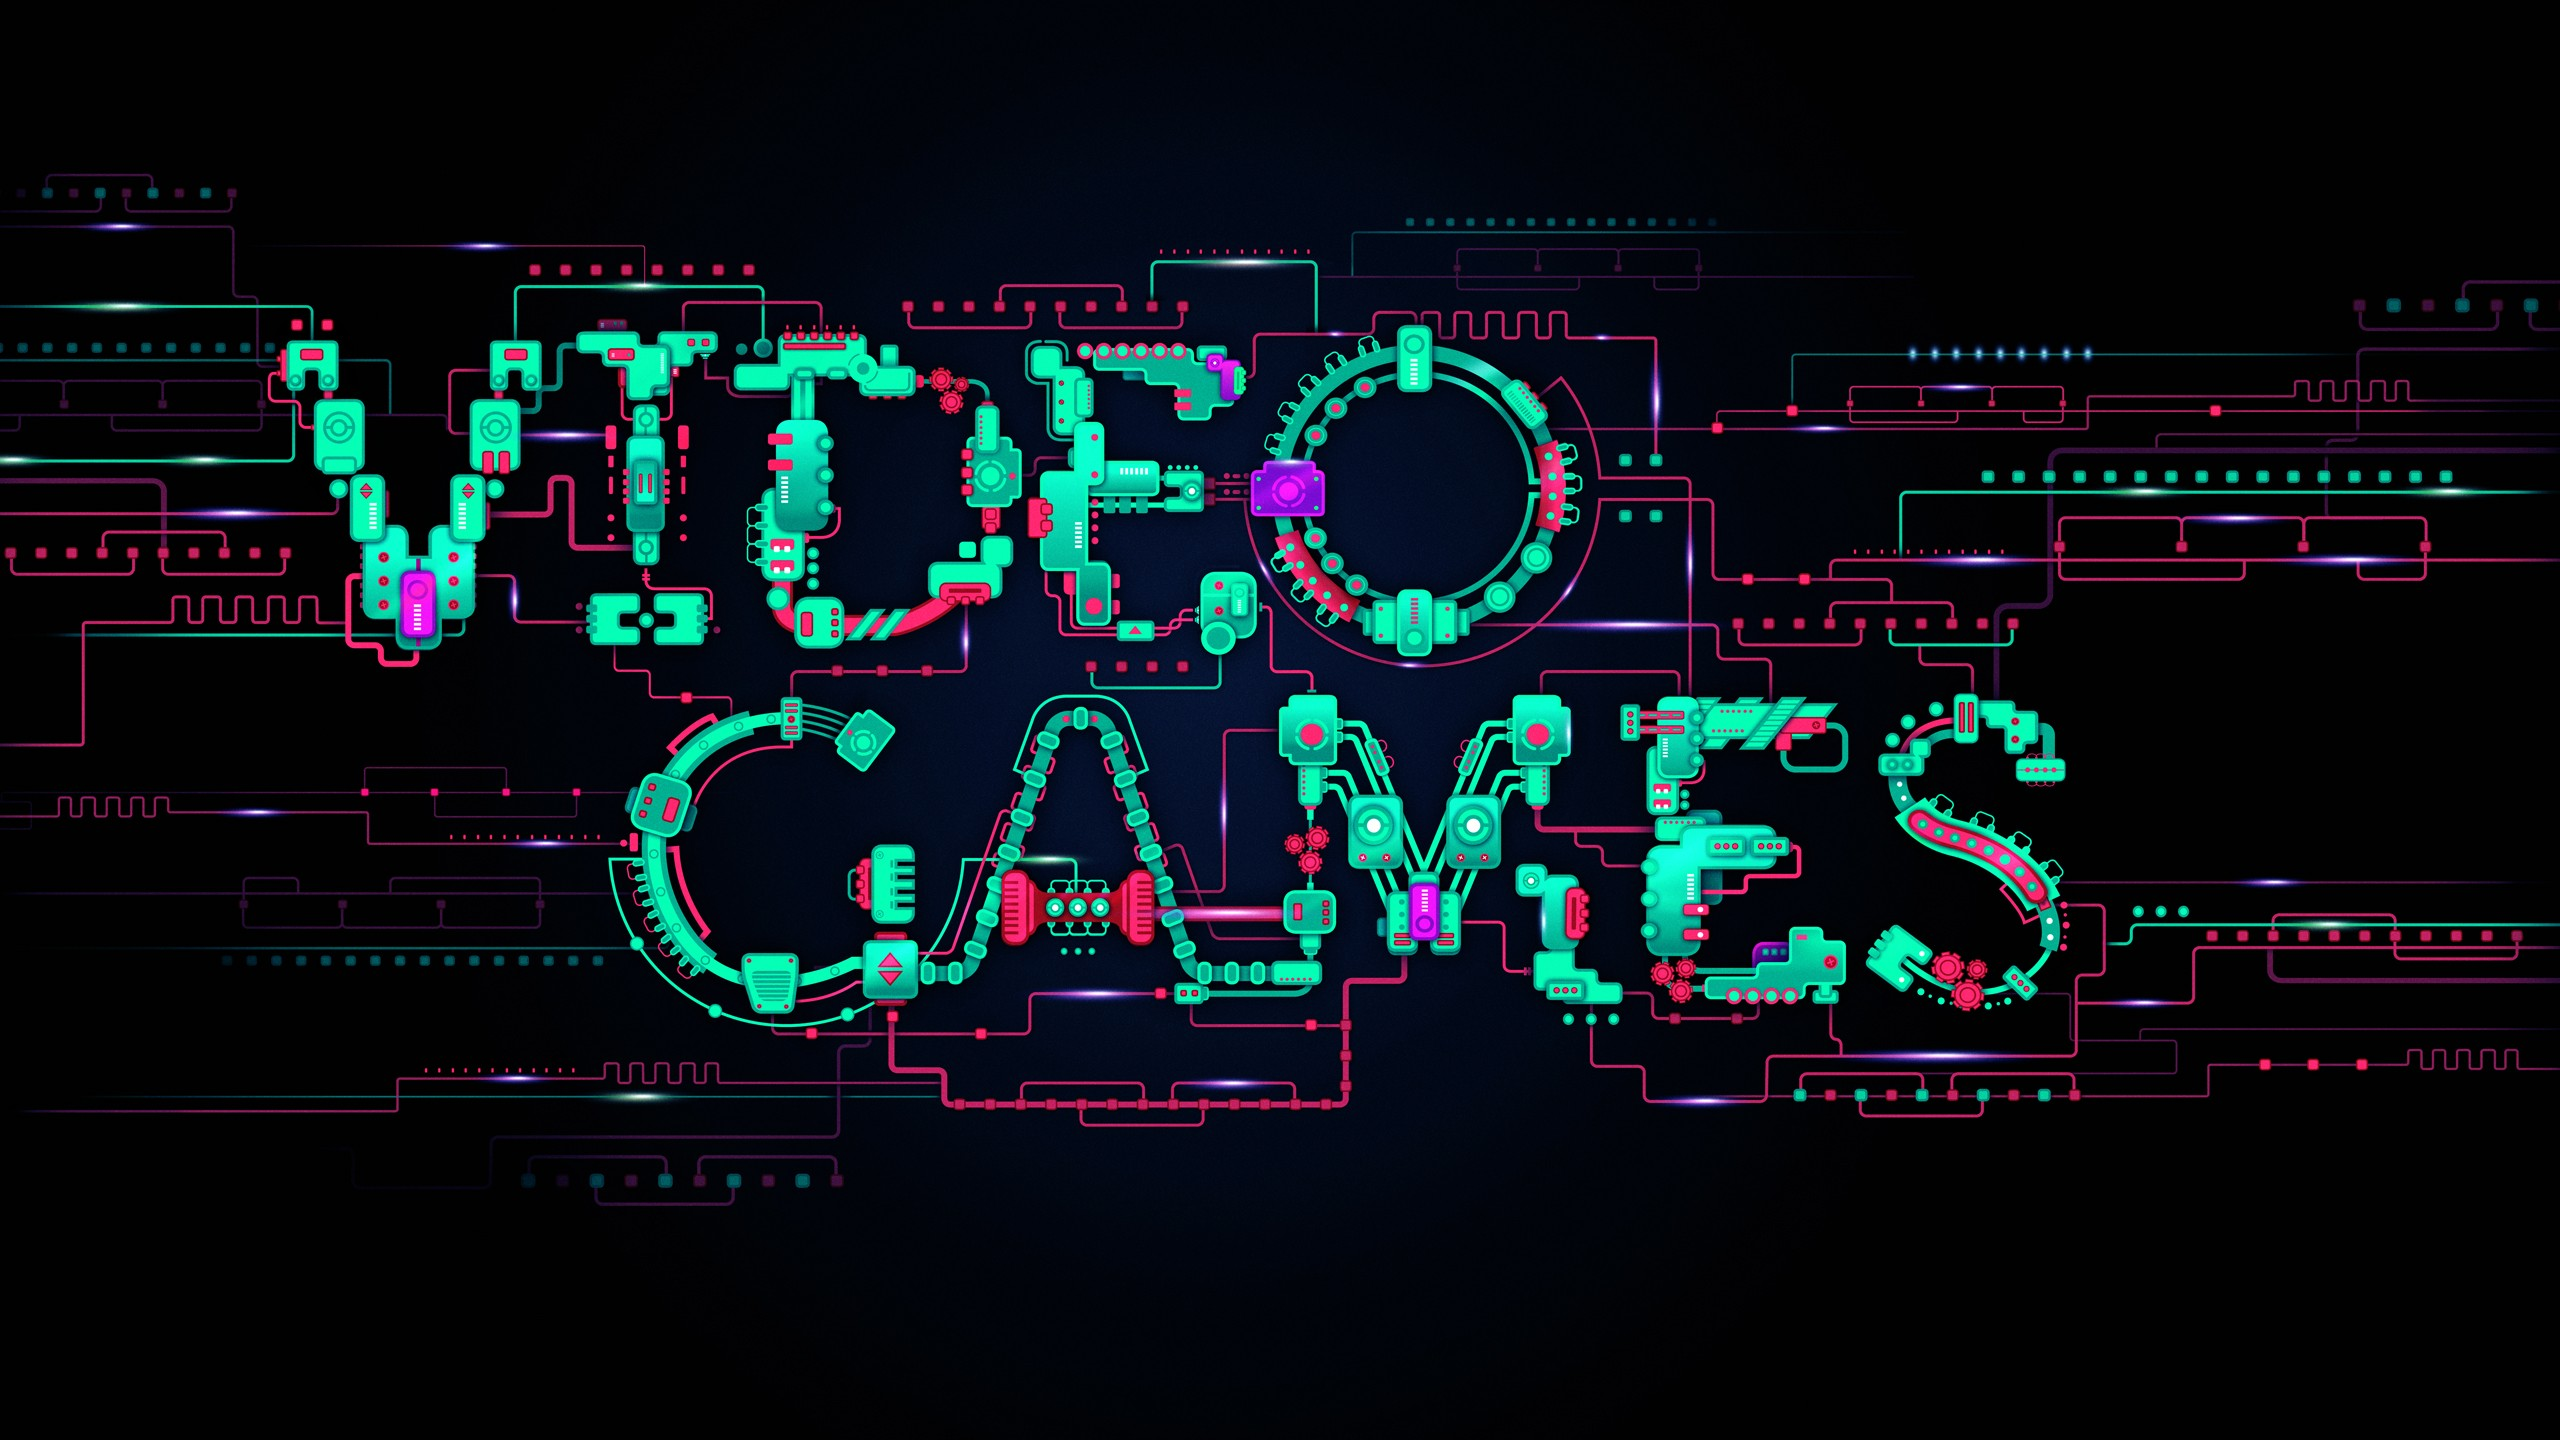 wwwpicstopincom25602560x1440 video games typography wallpaper 2560x1440